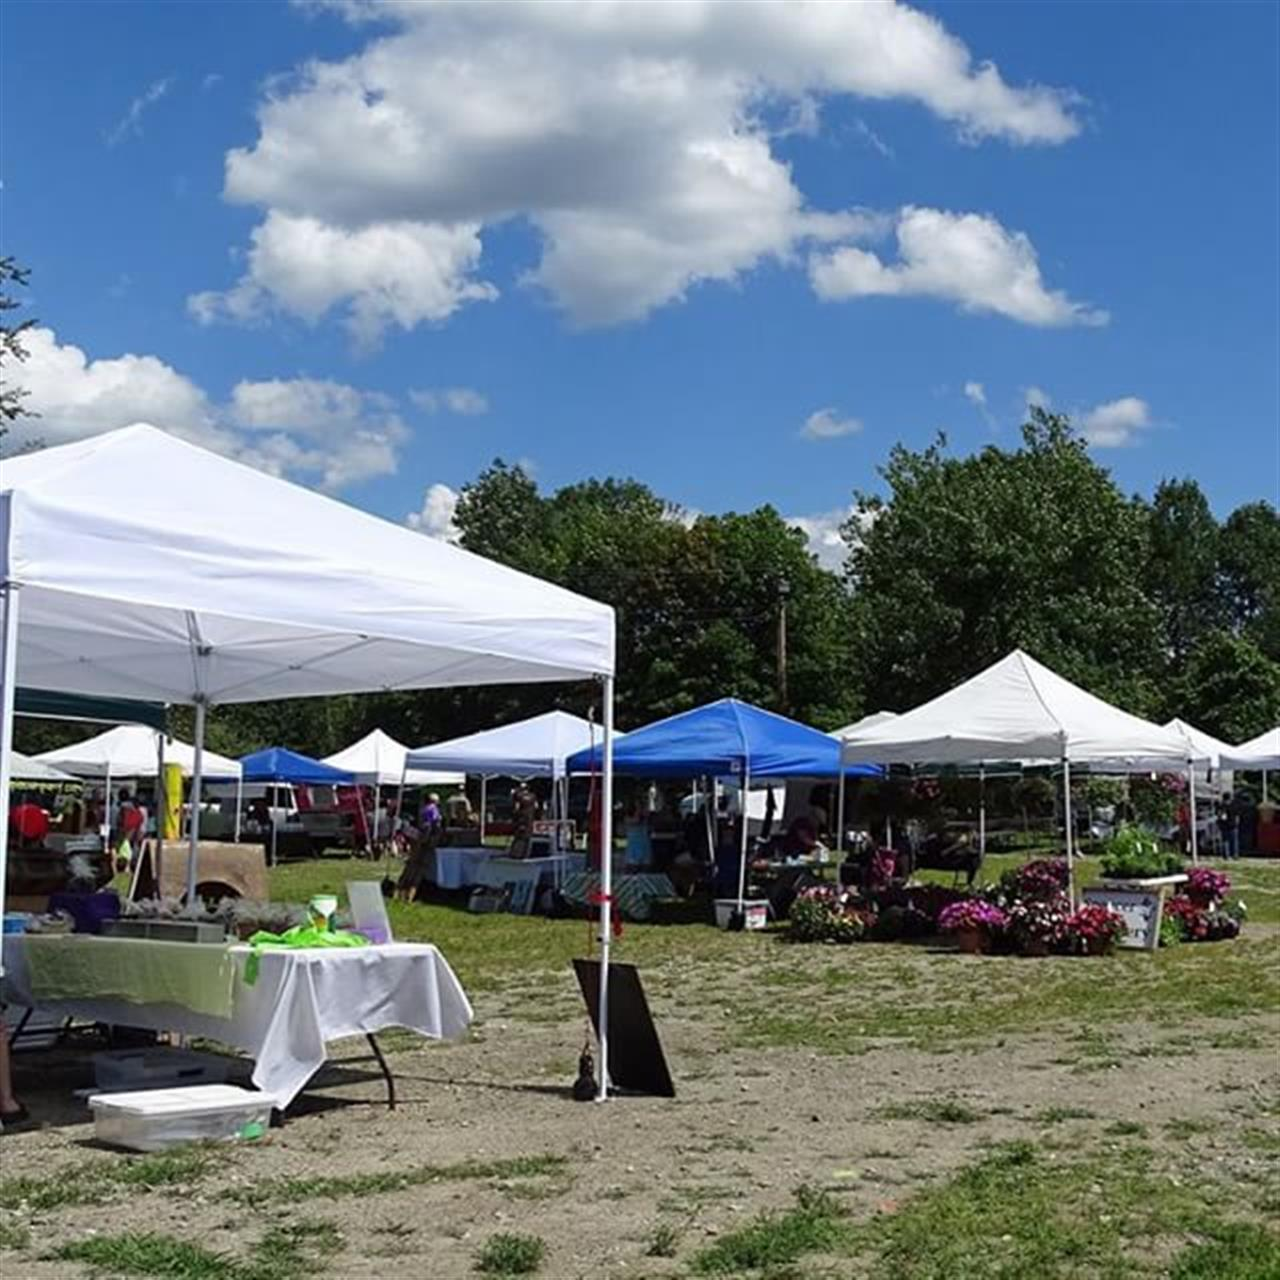 Have you been to the #shrewsburyfarmersmarket ? It is at #skiward on Wednesdays this summer. Great stop to support #local farmers and crafts people.  #farmersmarket #eatclean #eatlocal #buylocal #shrewsburyma #leadingrelocal #realestate